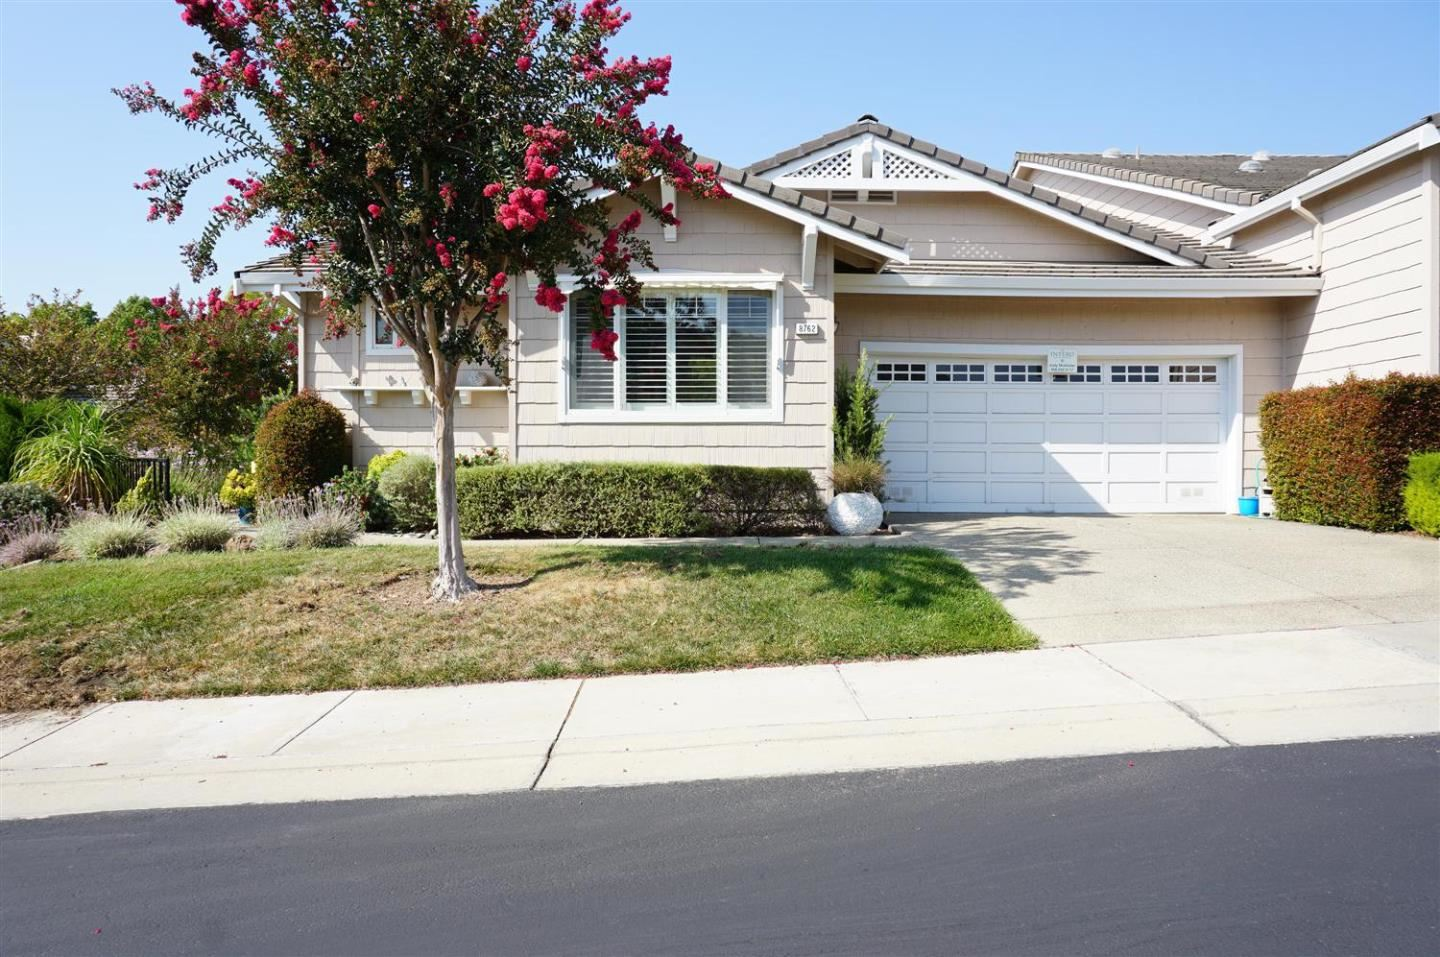 Photo for 8762 Mccarty Ranch DR, SAN JOSE, CA 95135 (MLS # ML81811080)